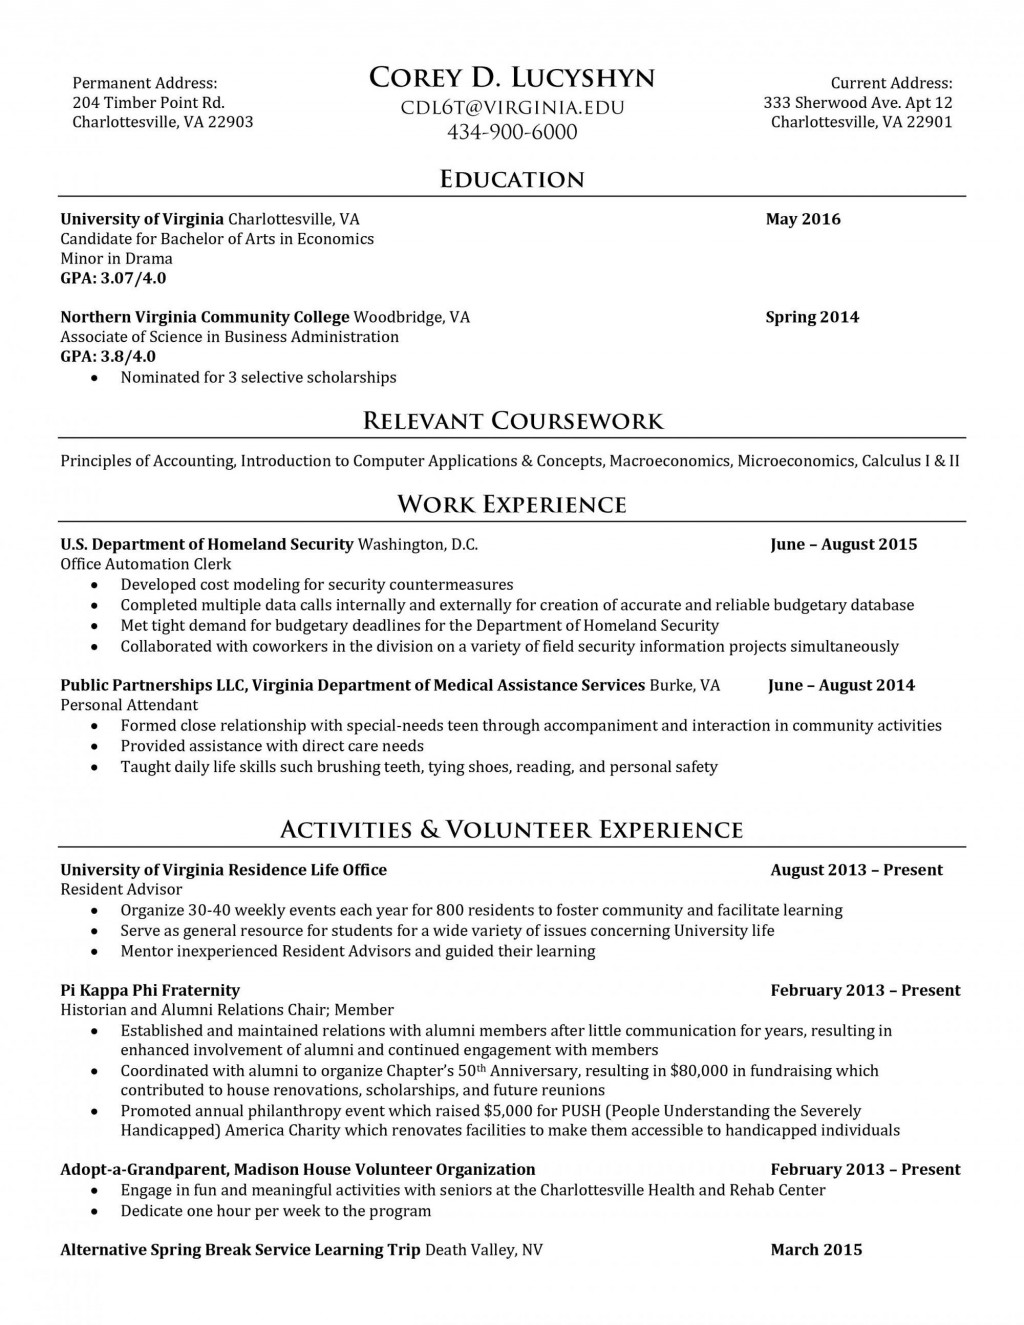 016 Virginia Tech Application Essay Flexibility And The Future Of Classrooms At Resume Corey Luc Questions Outstanding 2017 2016 Large